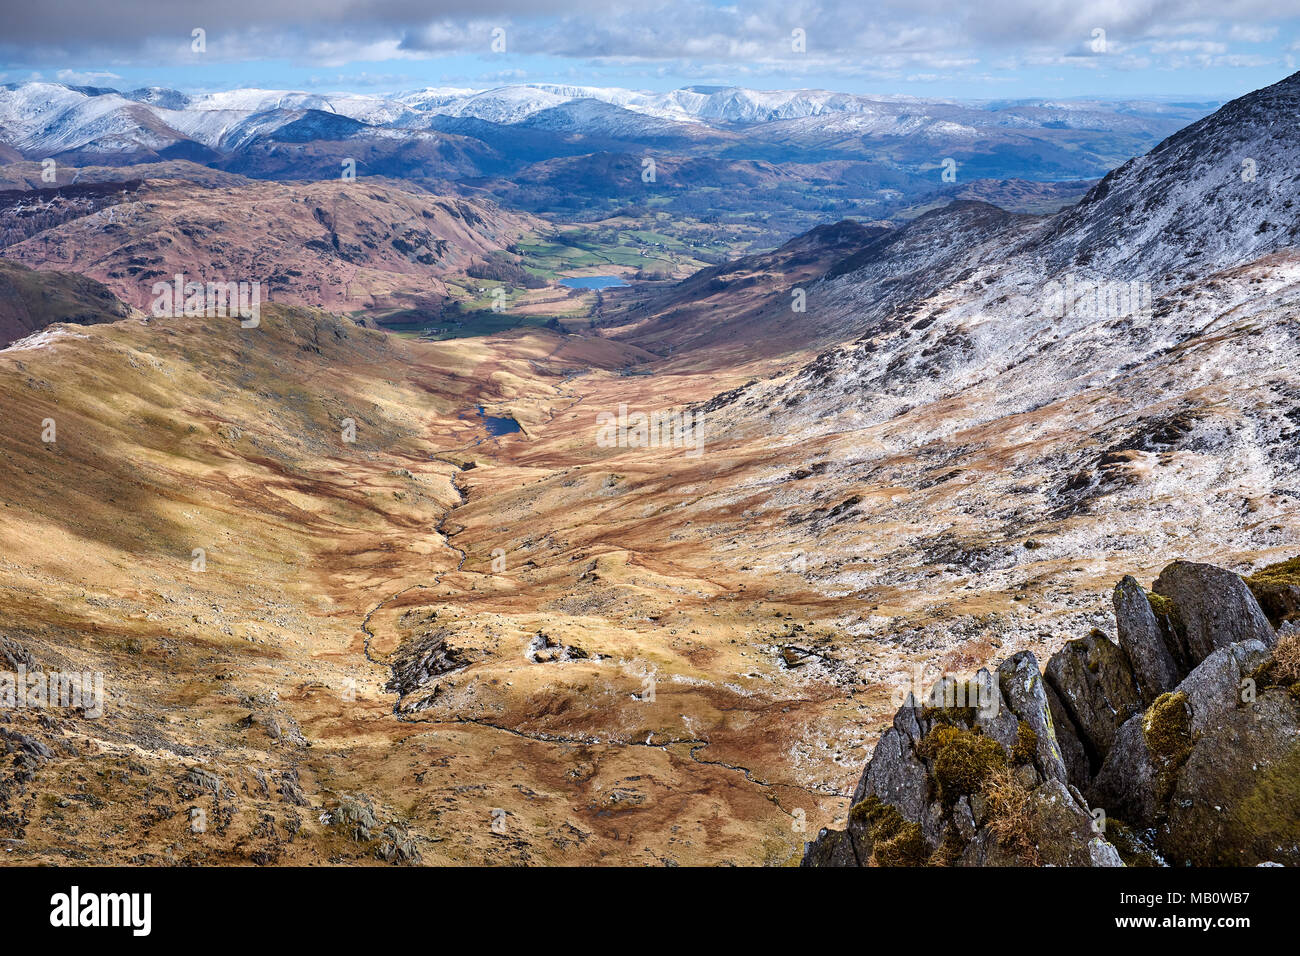 Cumbria / UK - April 5th 2018: The English Lake District and the Tilberthwaite fells with Little Langdale in the distance Stock Photo